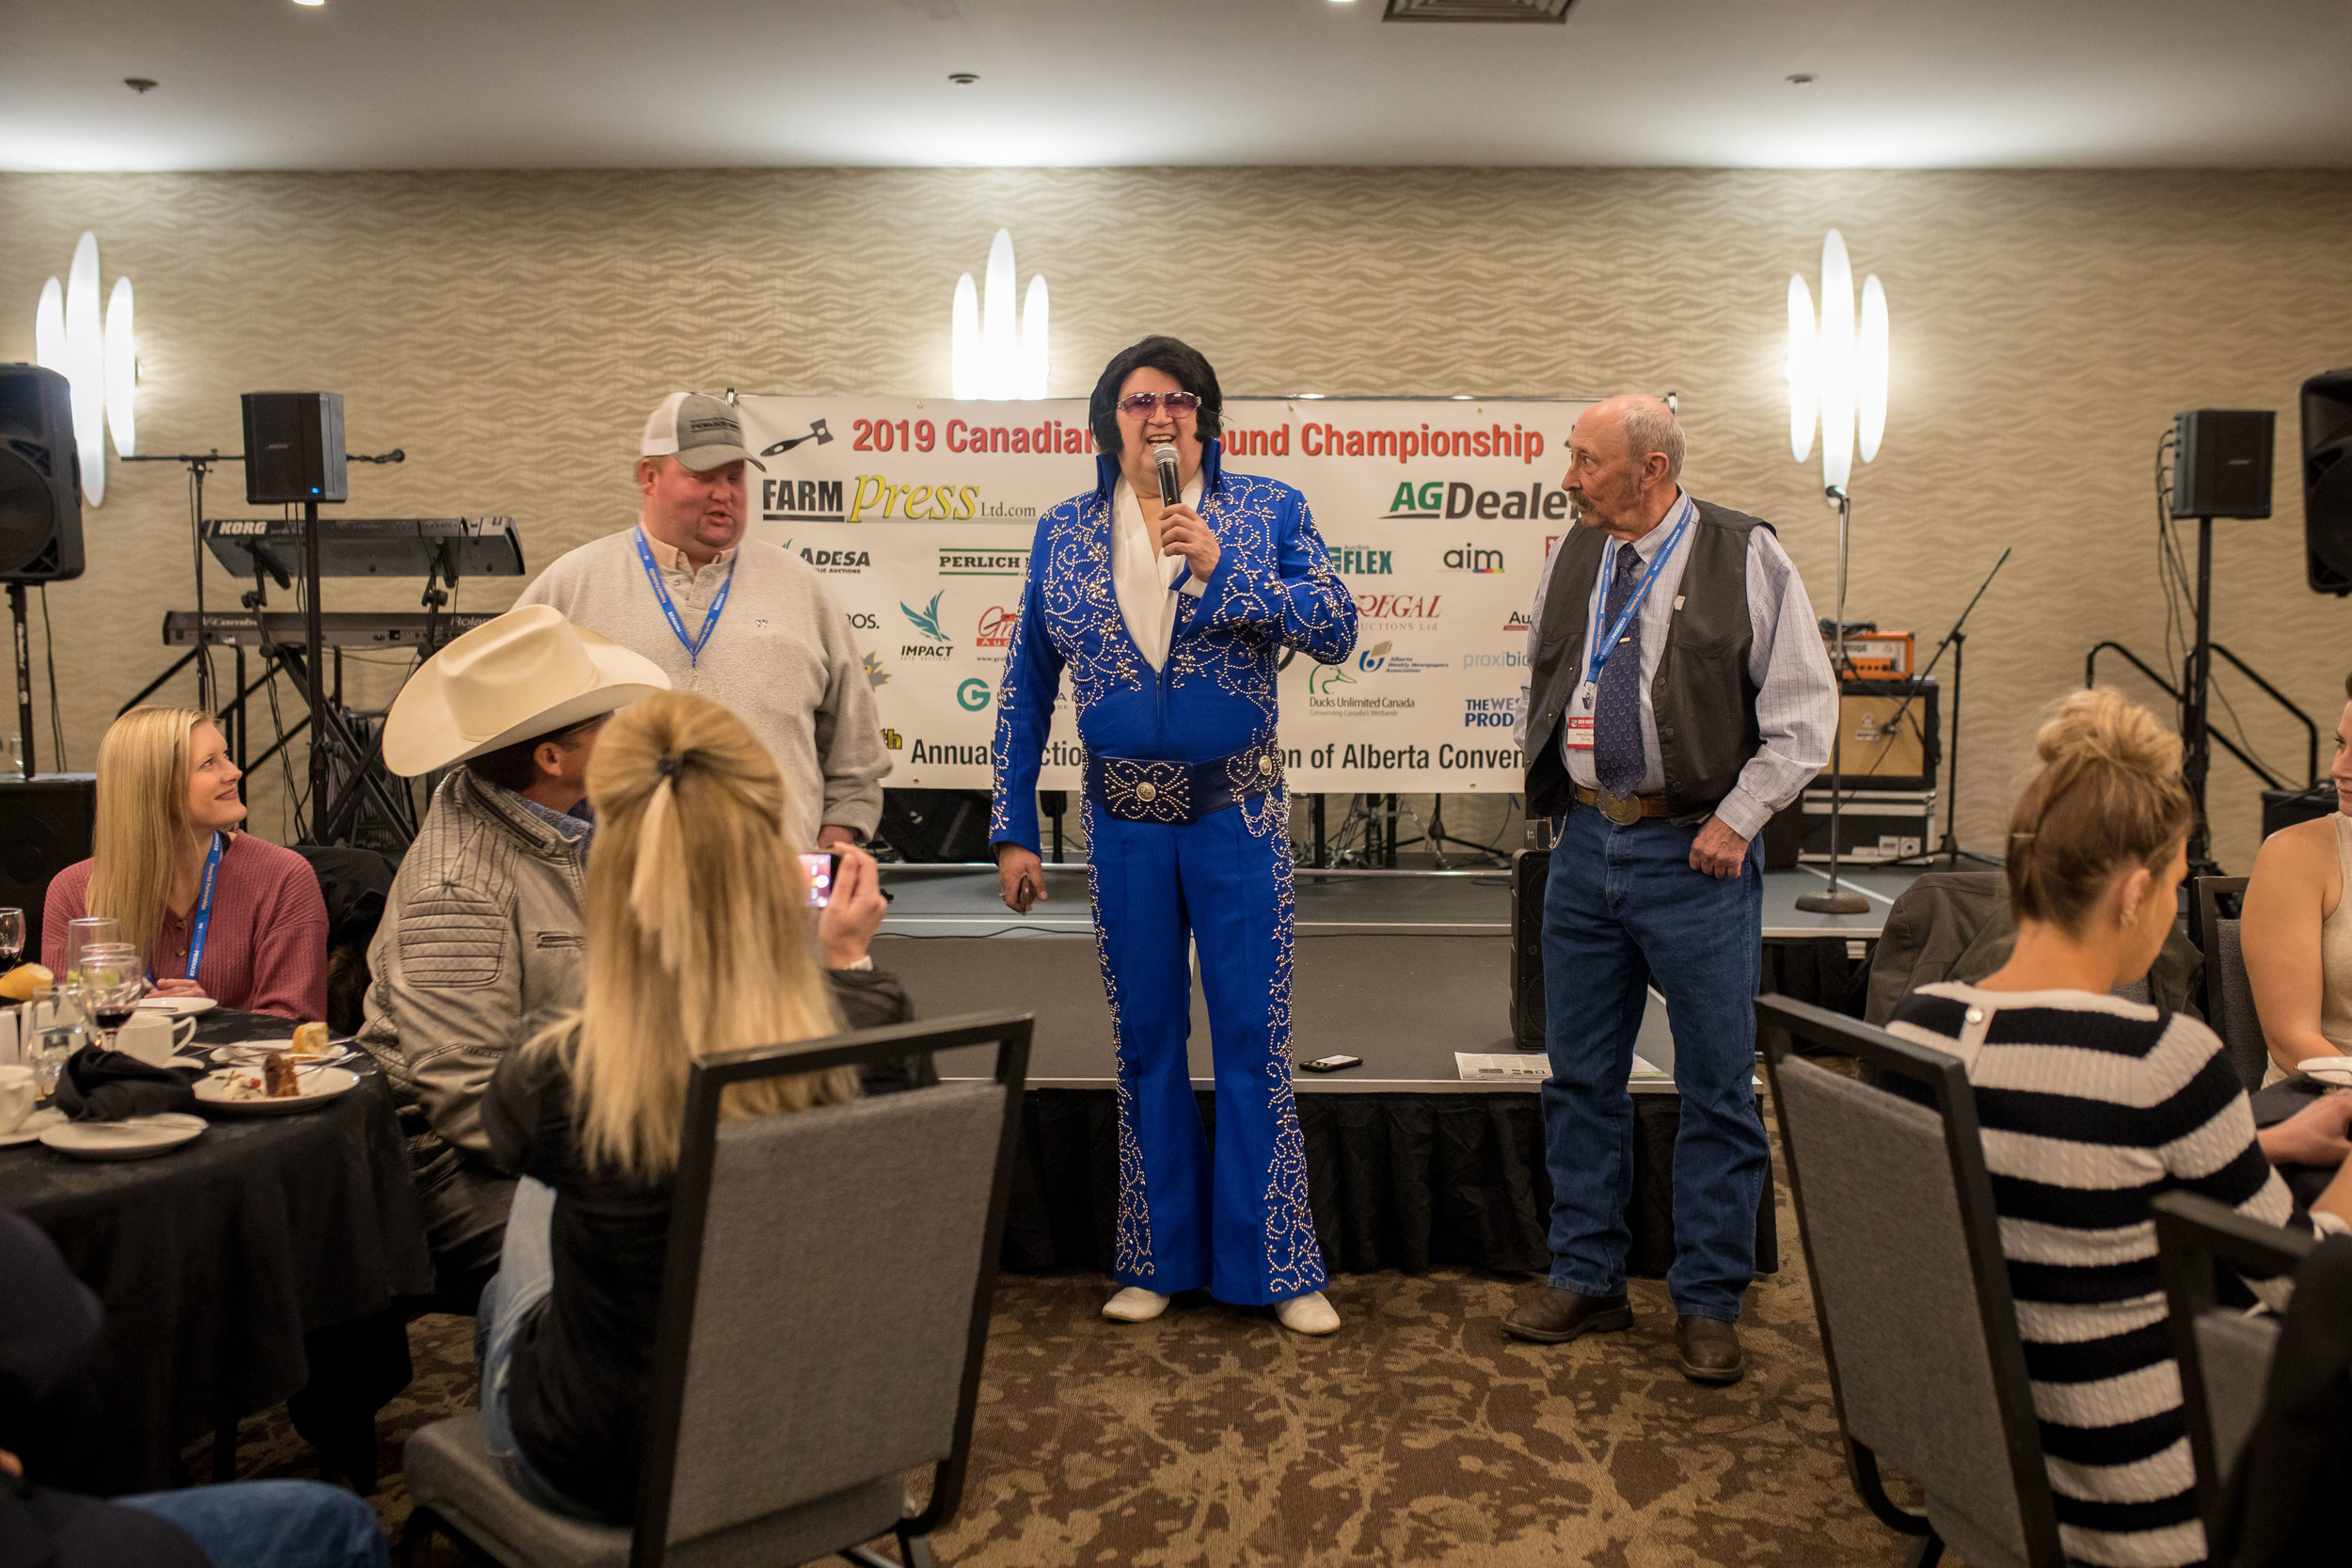 2019 02-01 Alberta Auctioneer Convention Day 02 - Calgary 18.jpg